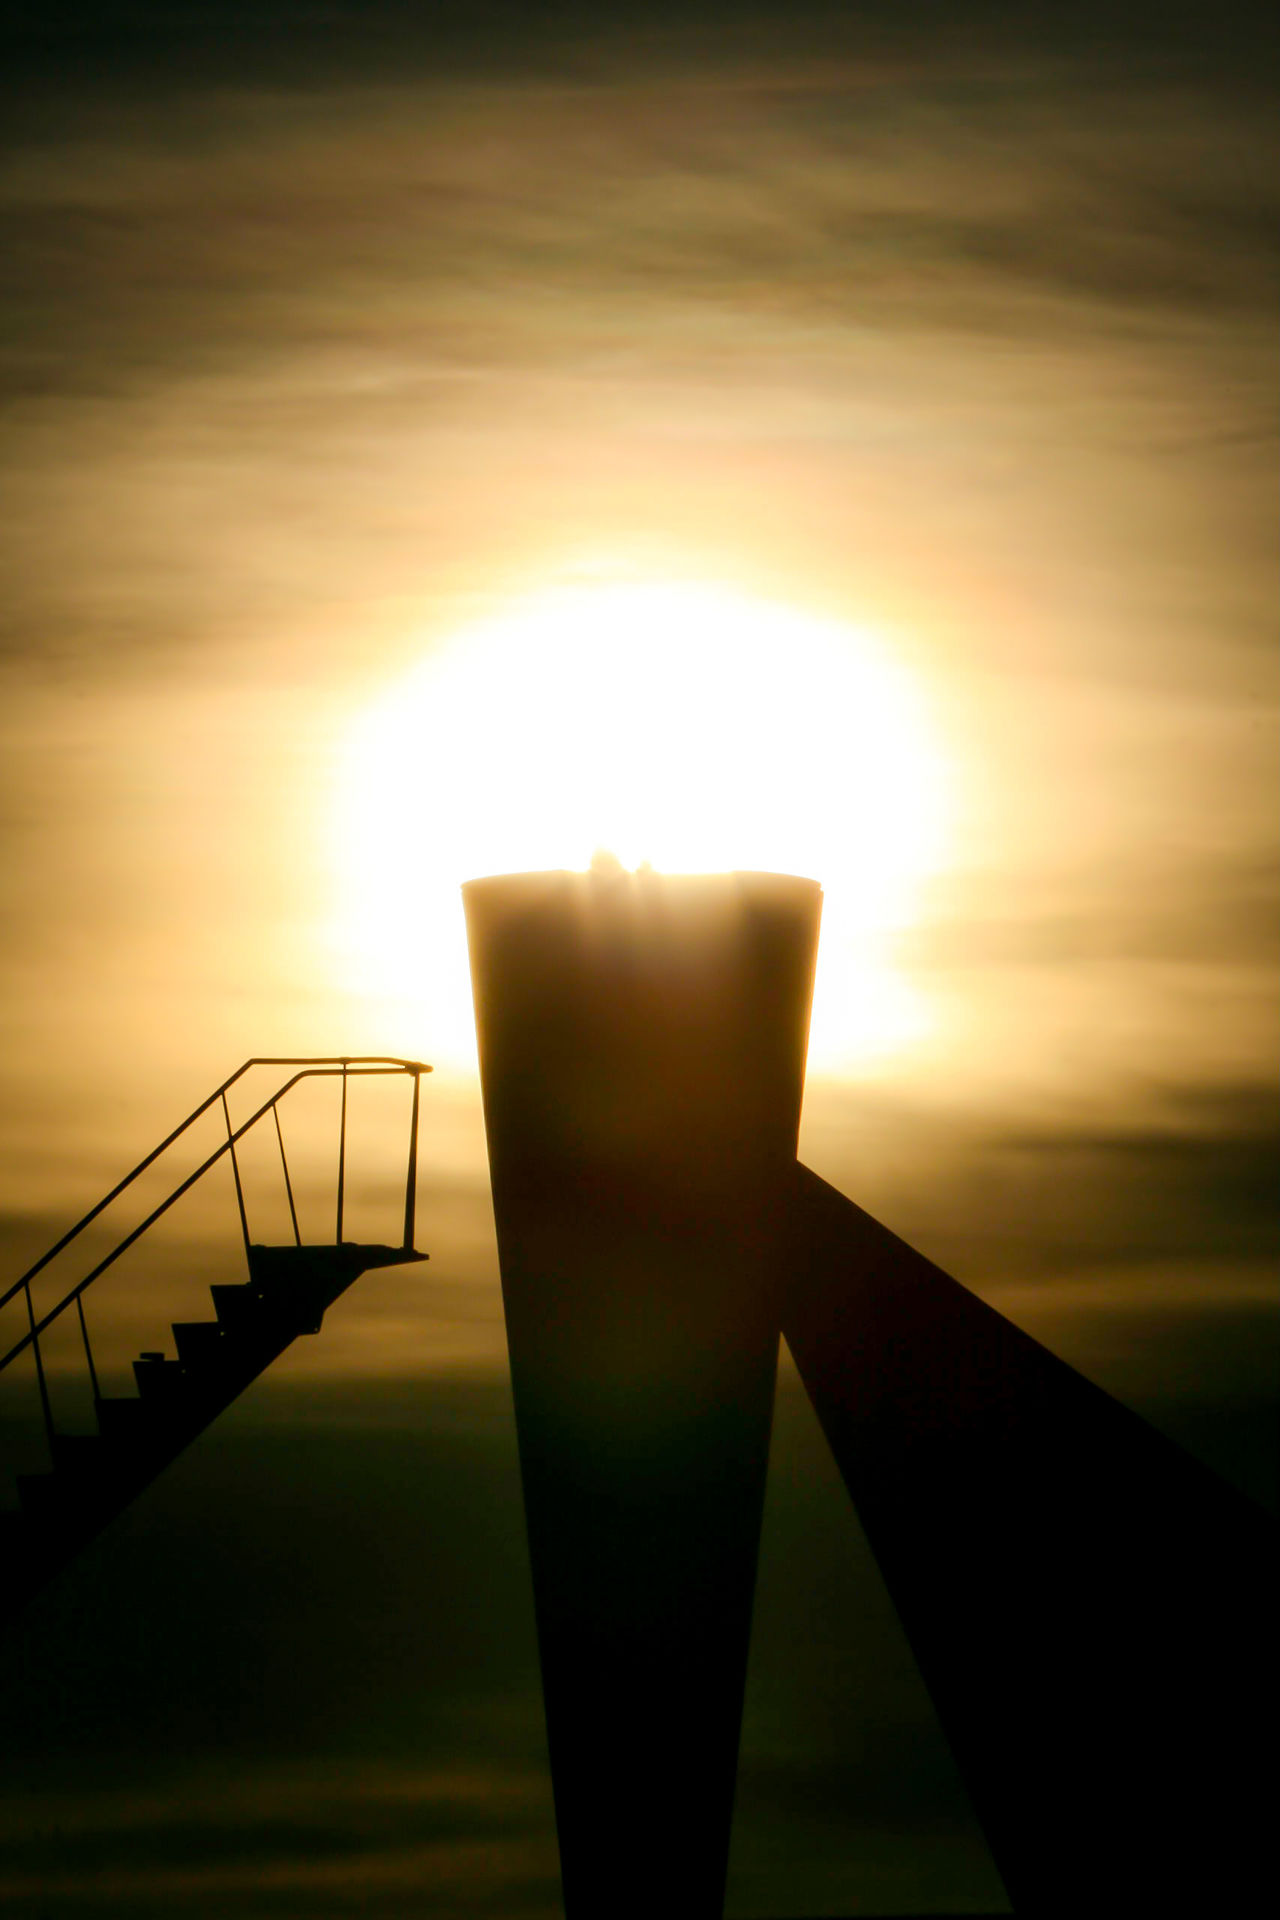 The olypic flame of lillehammer is still burning. Day Lens Flare Nature No People Olympia Olympic Olympic Fire Olympic Flame Olympic Stadium Olympicgames Olympics Olympisches Feuer Outdoors Silhouette Sky Steps Sun Sunbeam Sunlight Sunset Sunset Silhouettes Sunset_collection Tranquility